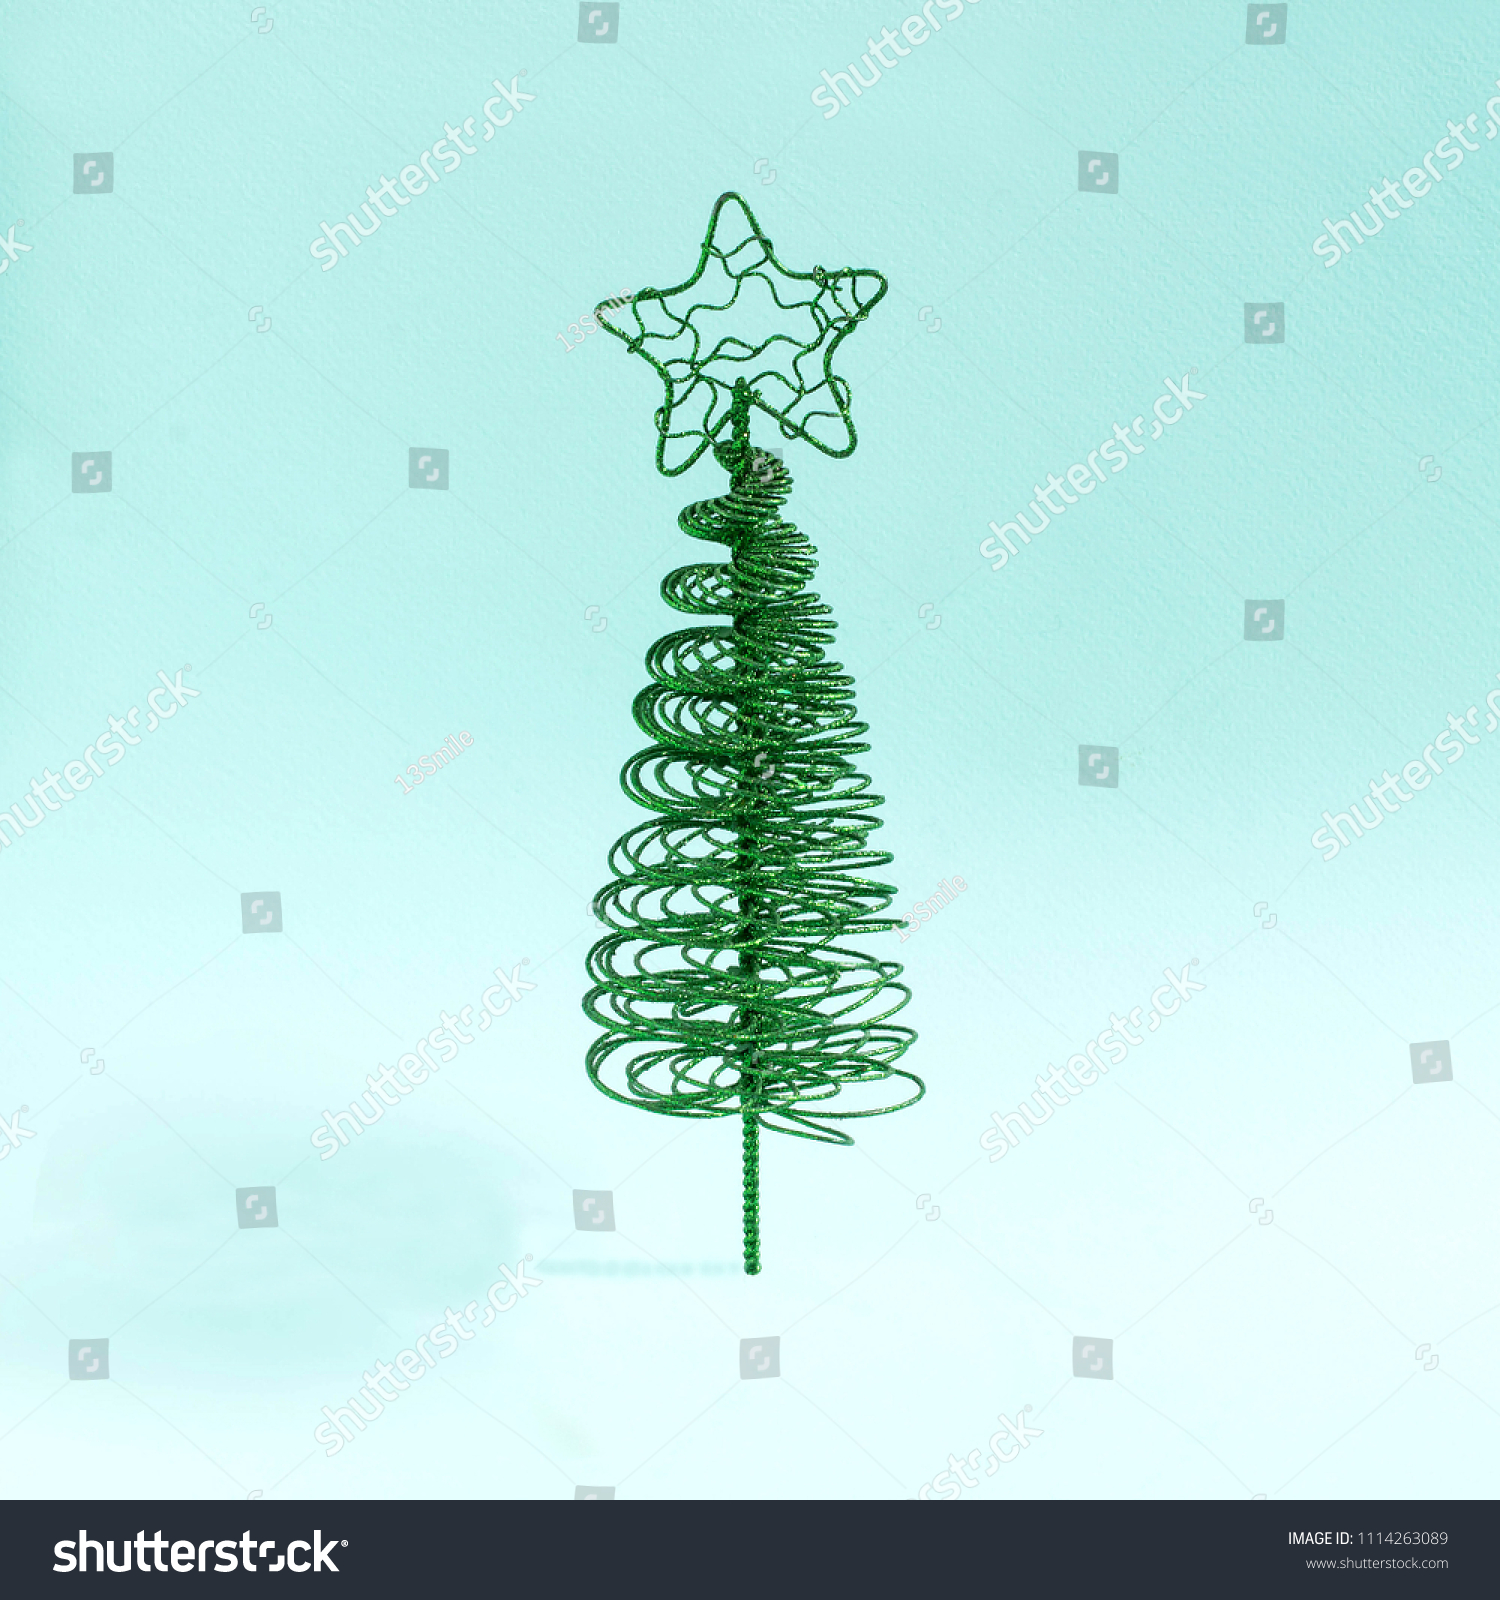 Small Elegant Christmas Tree Made Wire Stock Photo Edit Now 1114263089